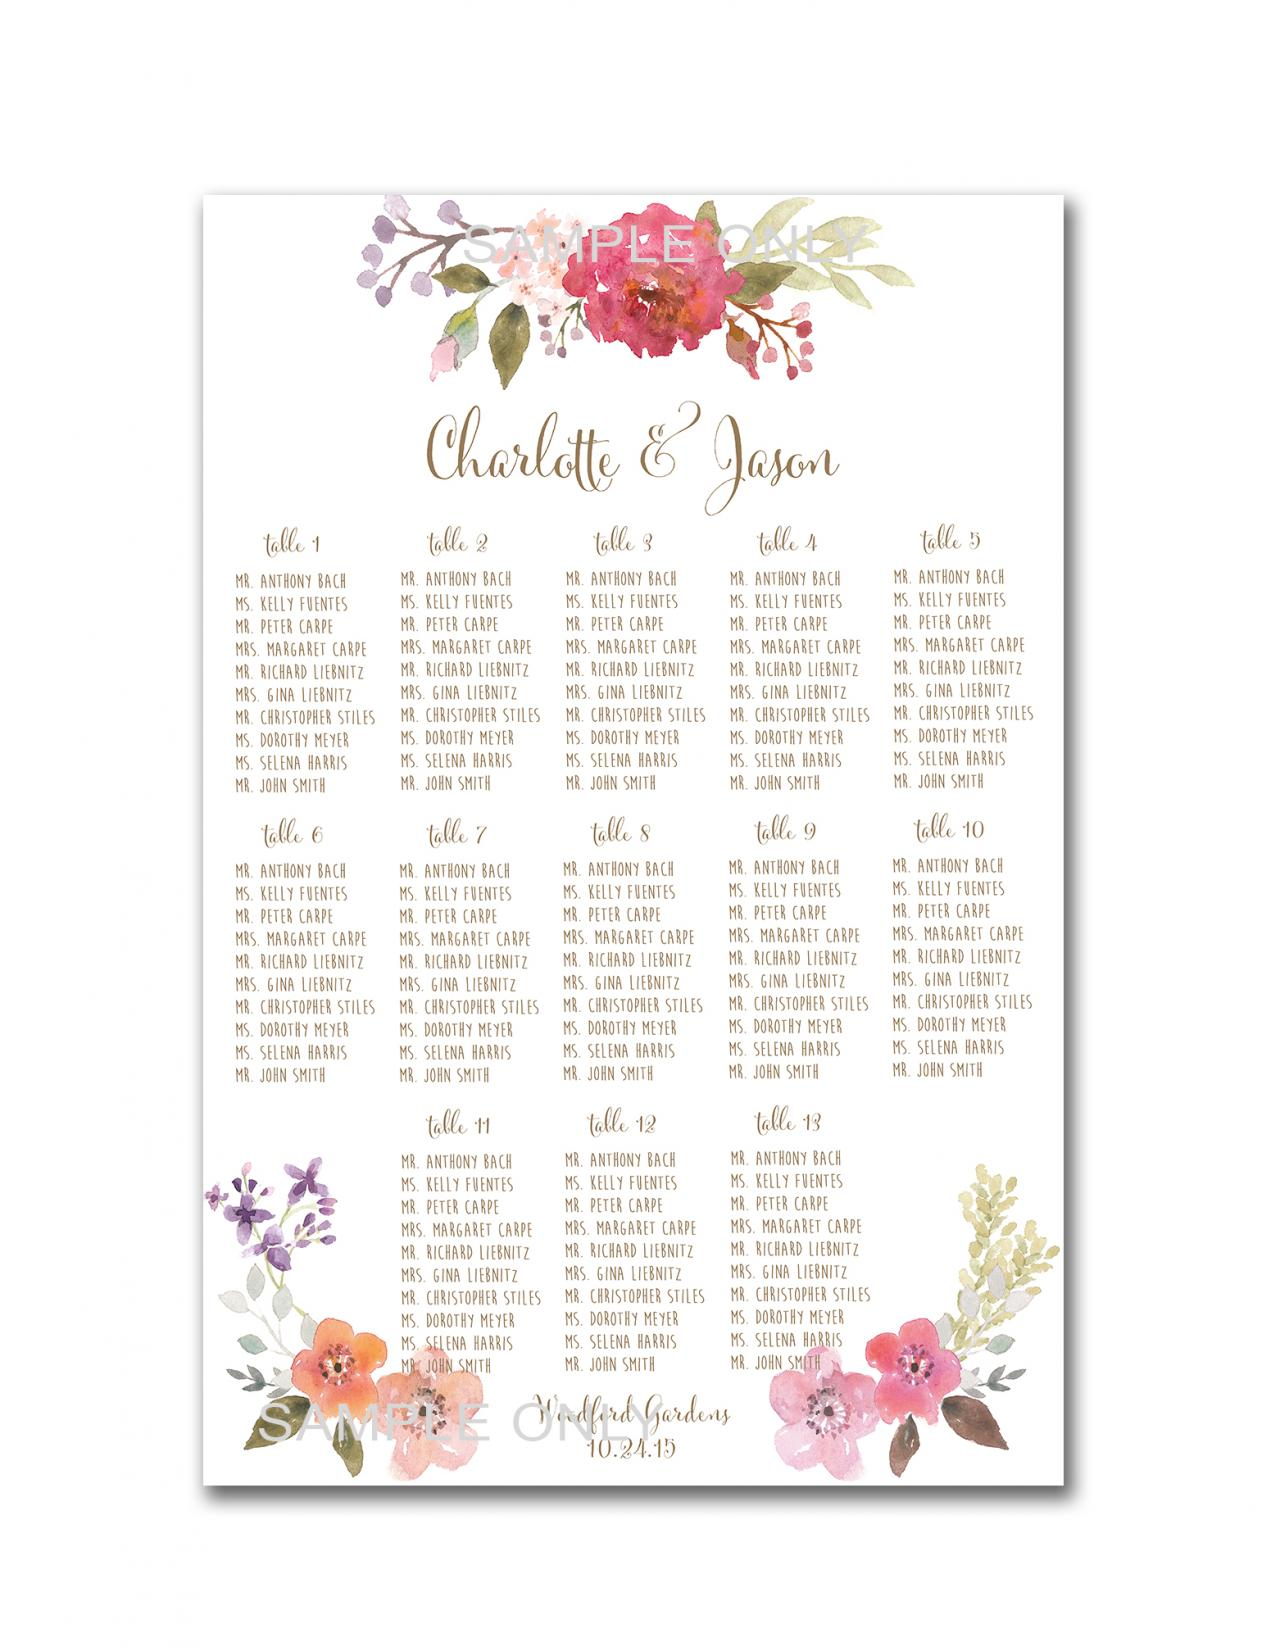 wedding seating chart printable – Free Printable Seating Chart